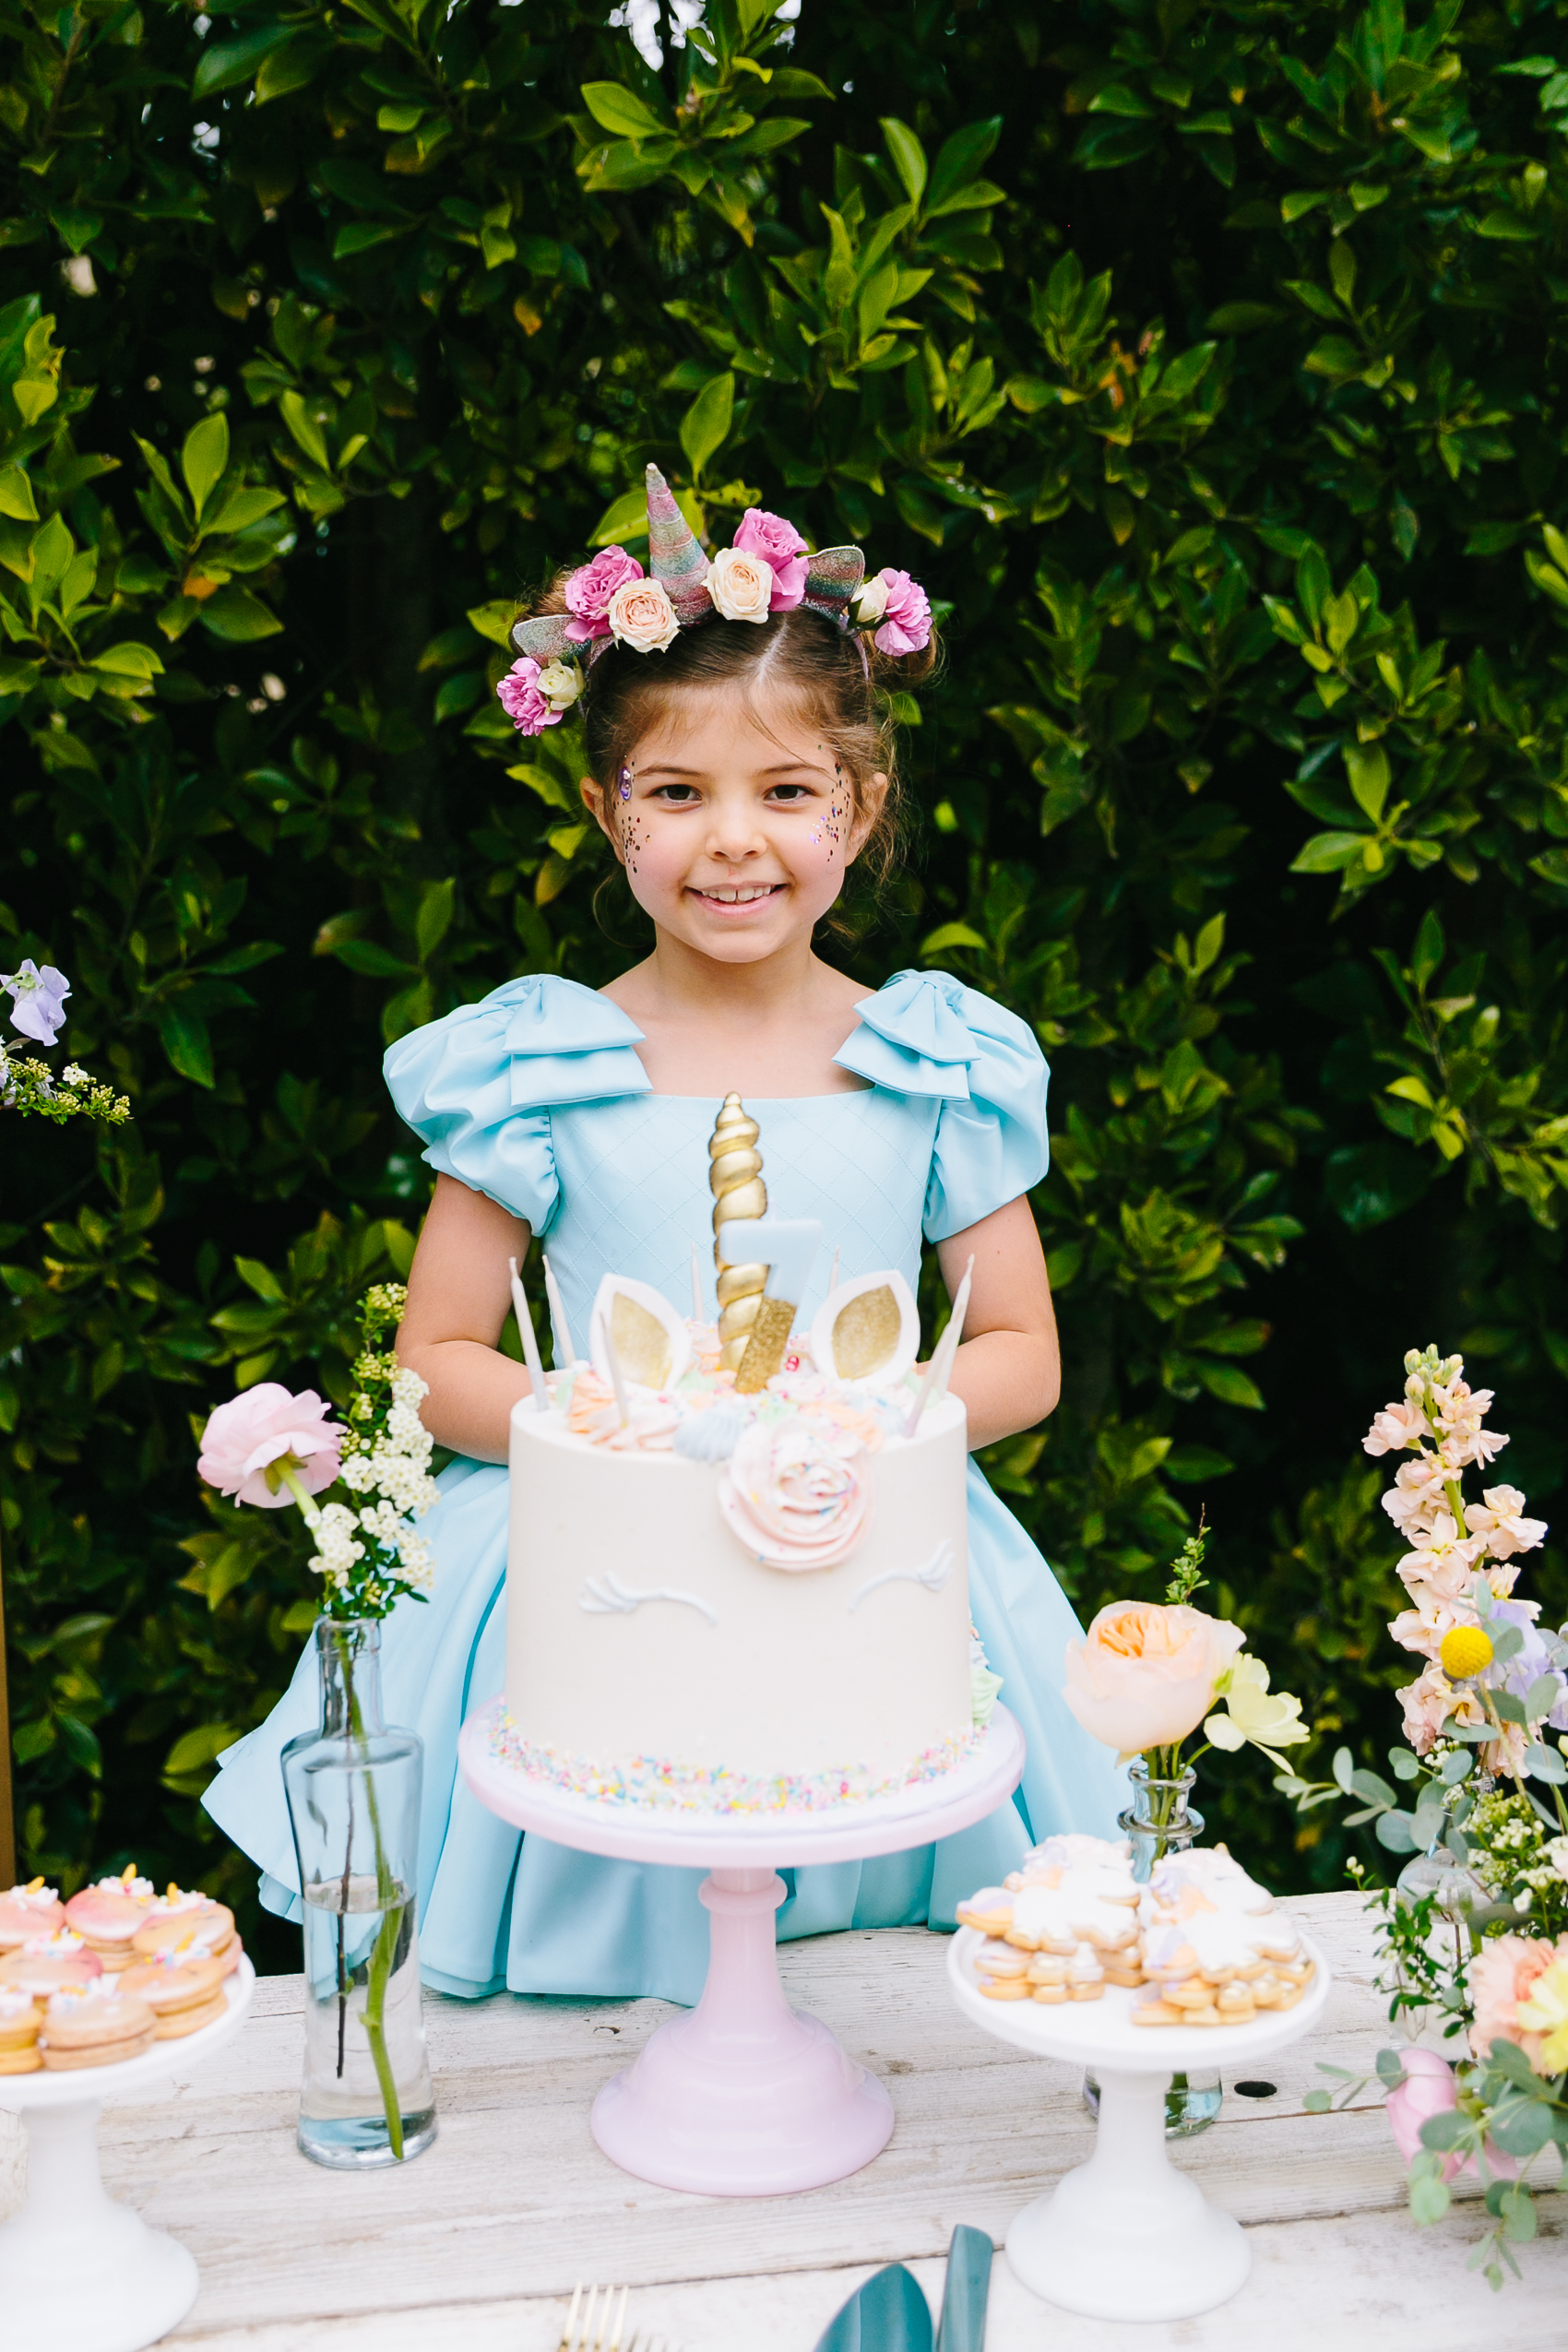 Los_Angeles_Family_Photographer_Luxury_Childrens_Party_Beverly_Hills_Unicorn_Birthday_Party-1338.jpg